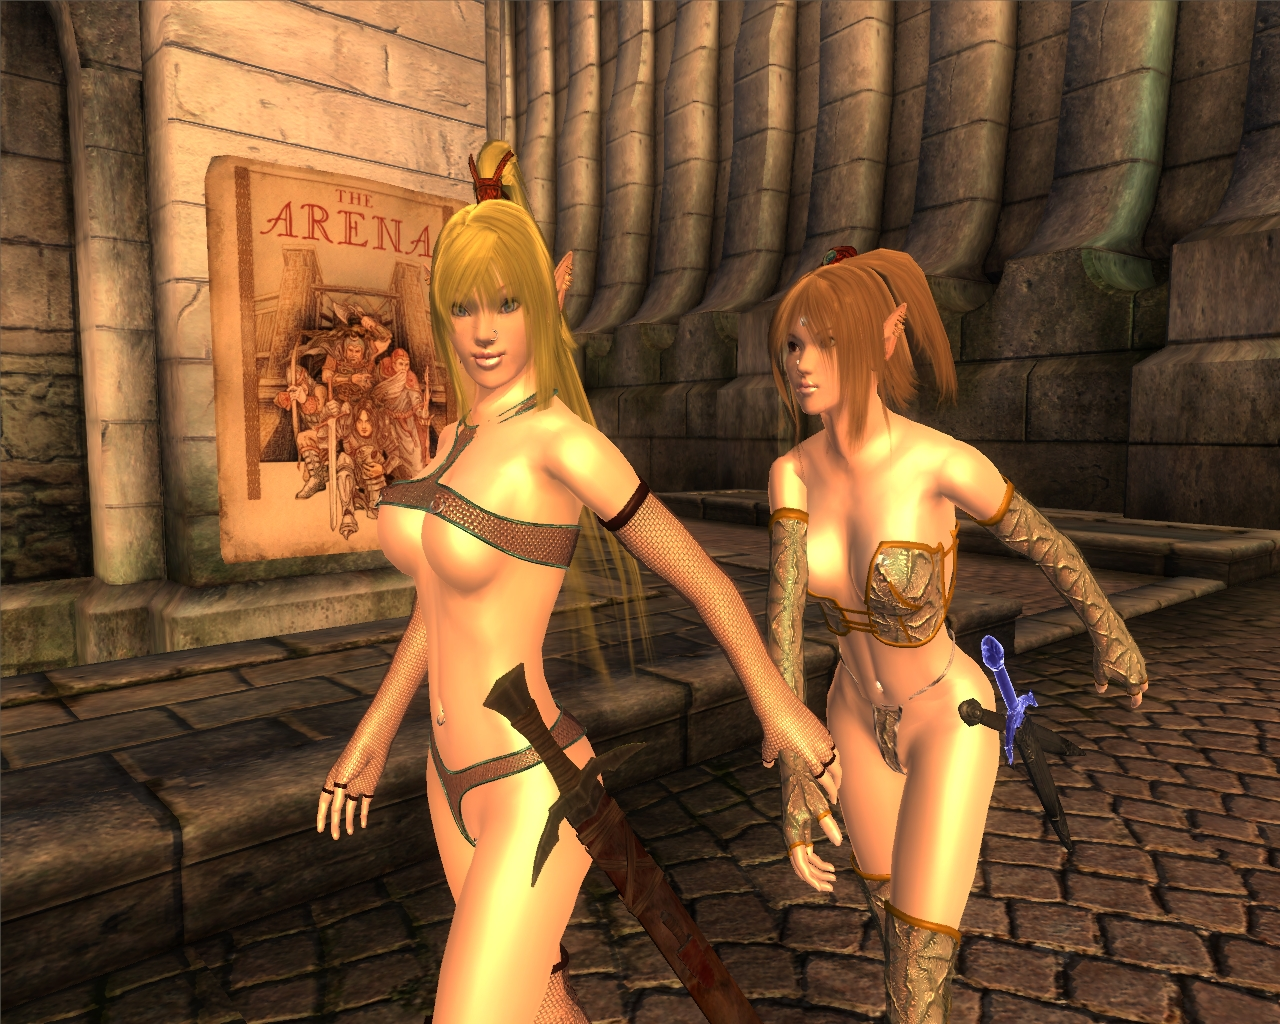 Porno oblivion mod porno galleries